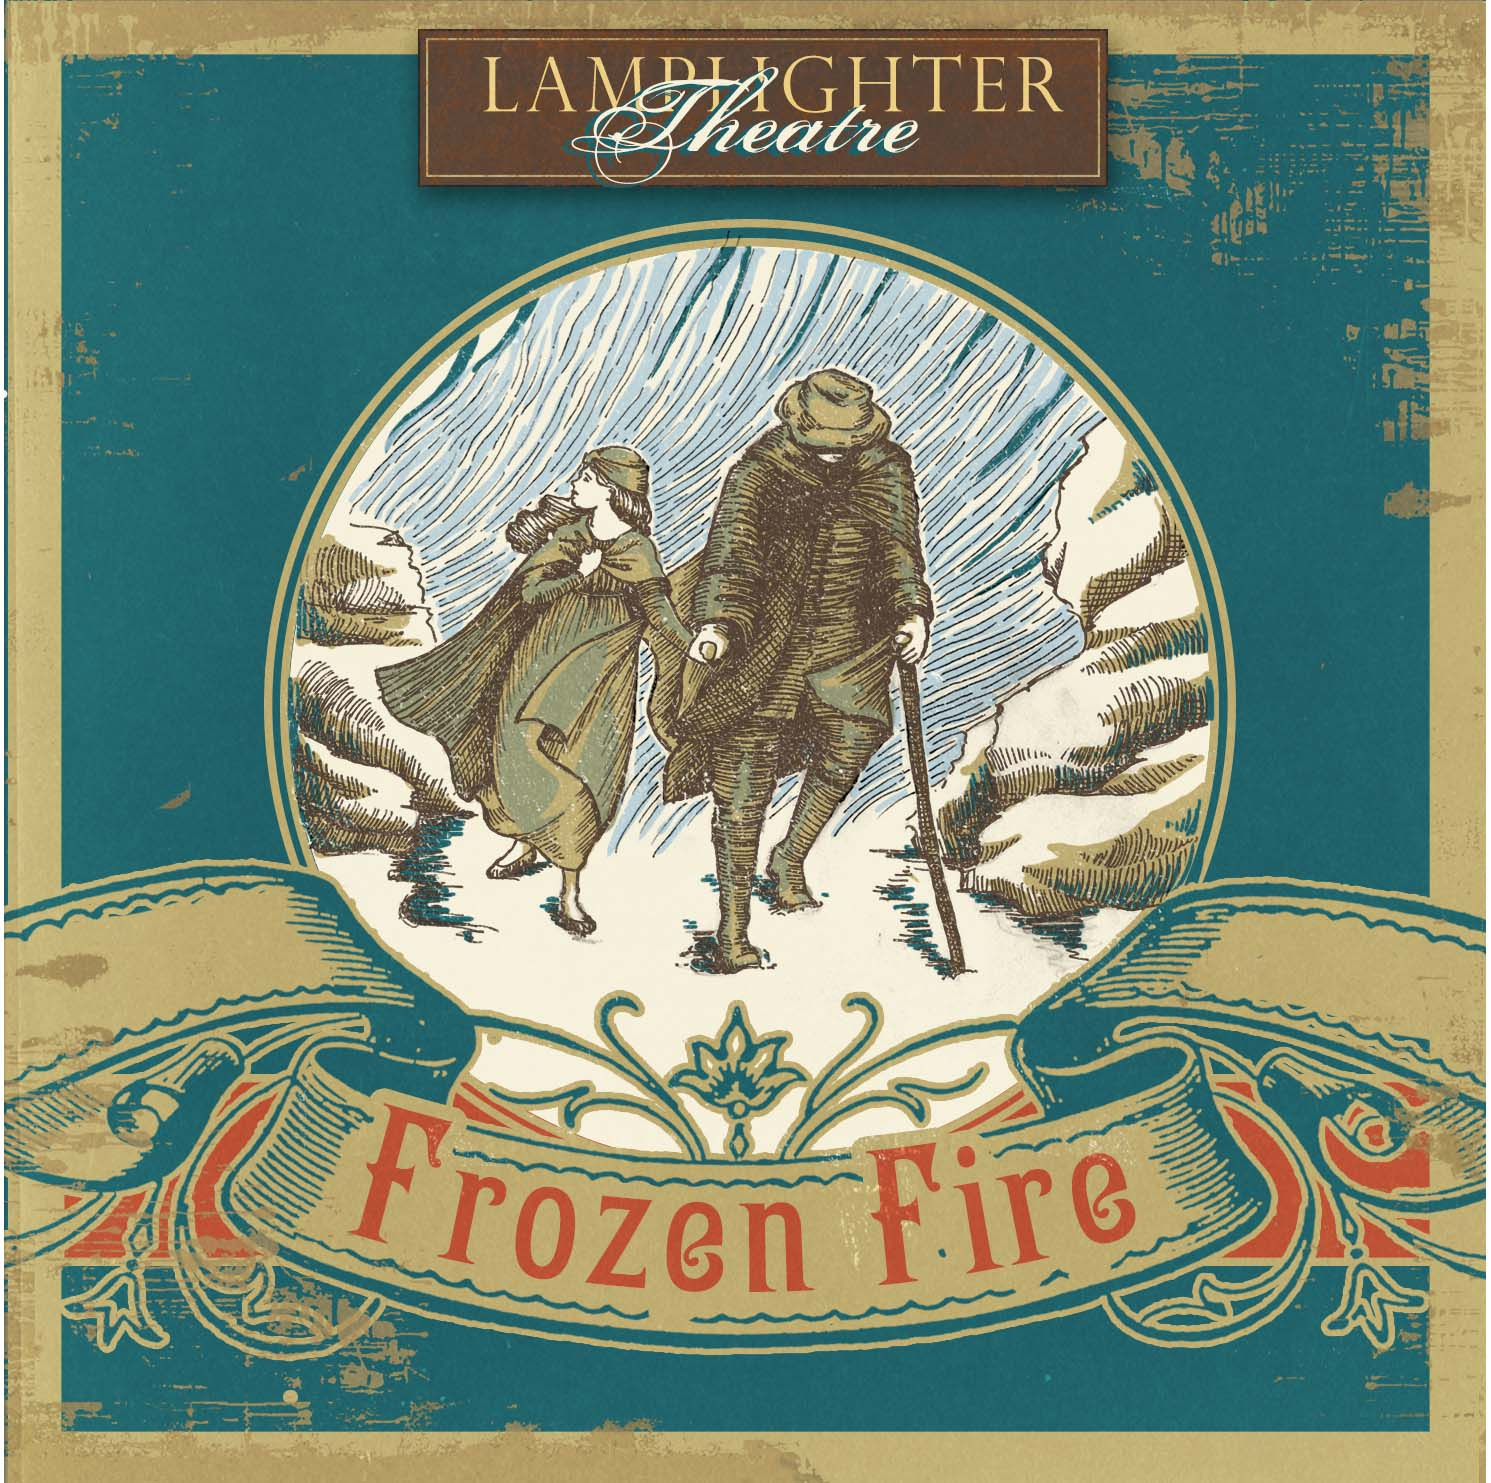 DA - Frozen Fire - Dramatic Audio MP3 Download